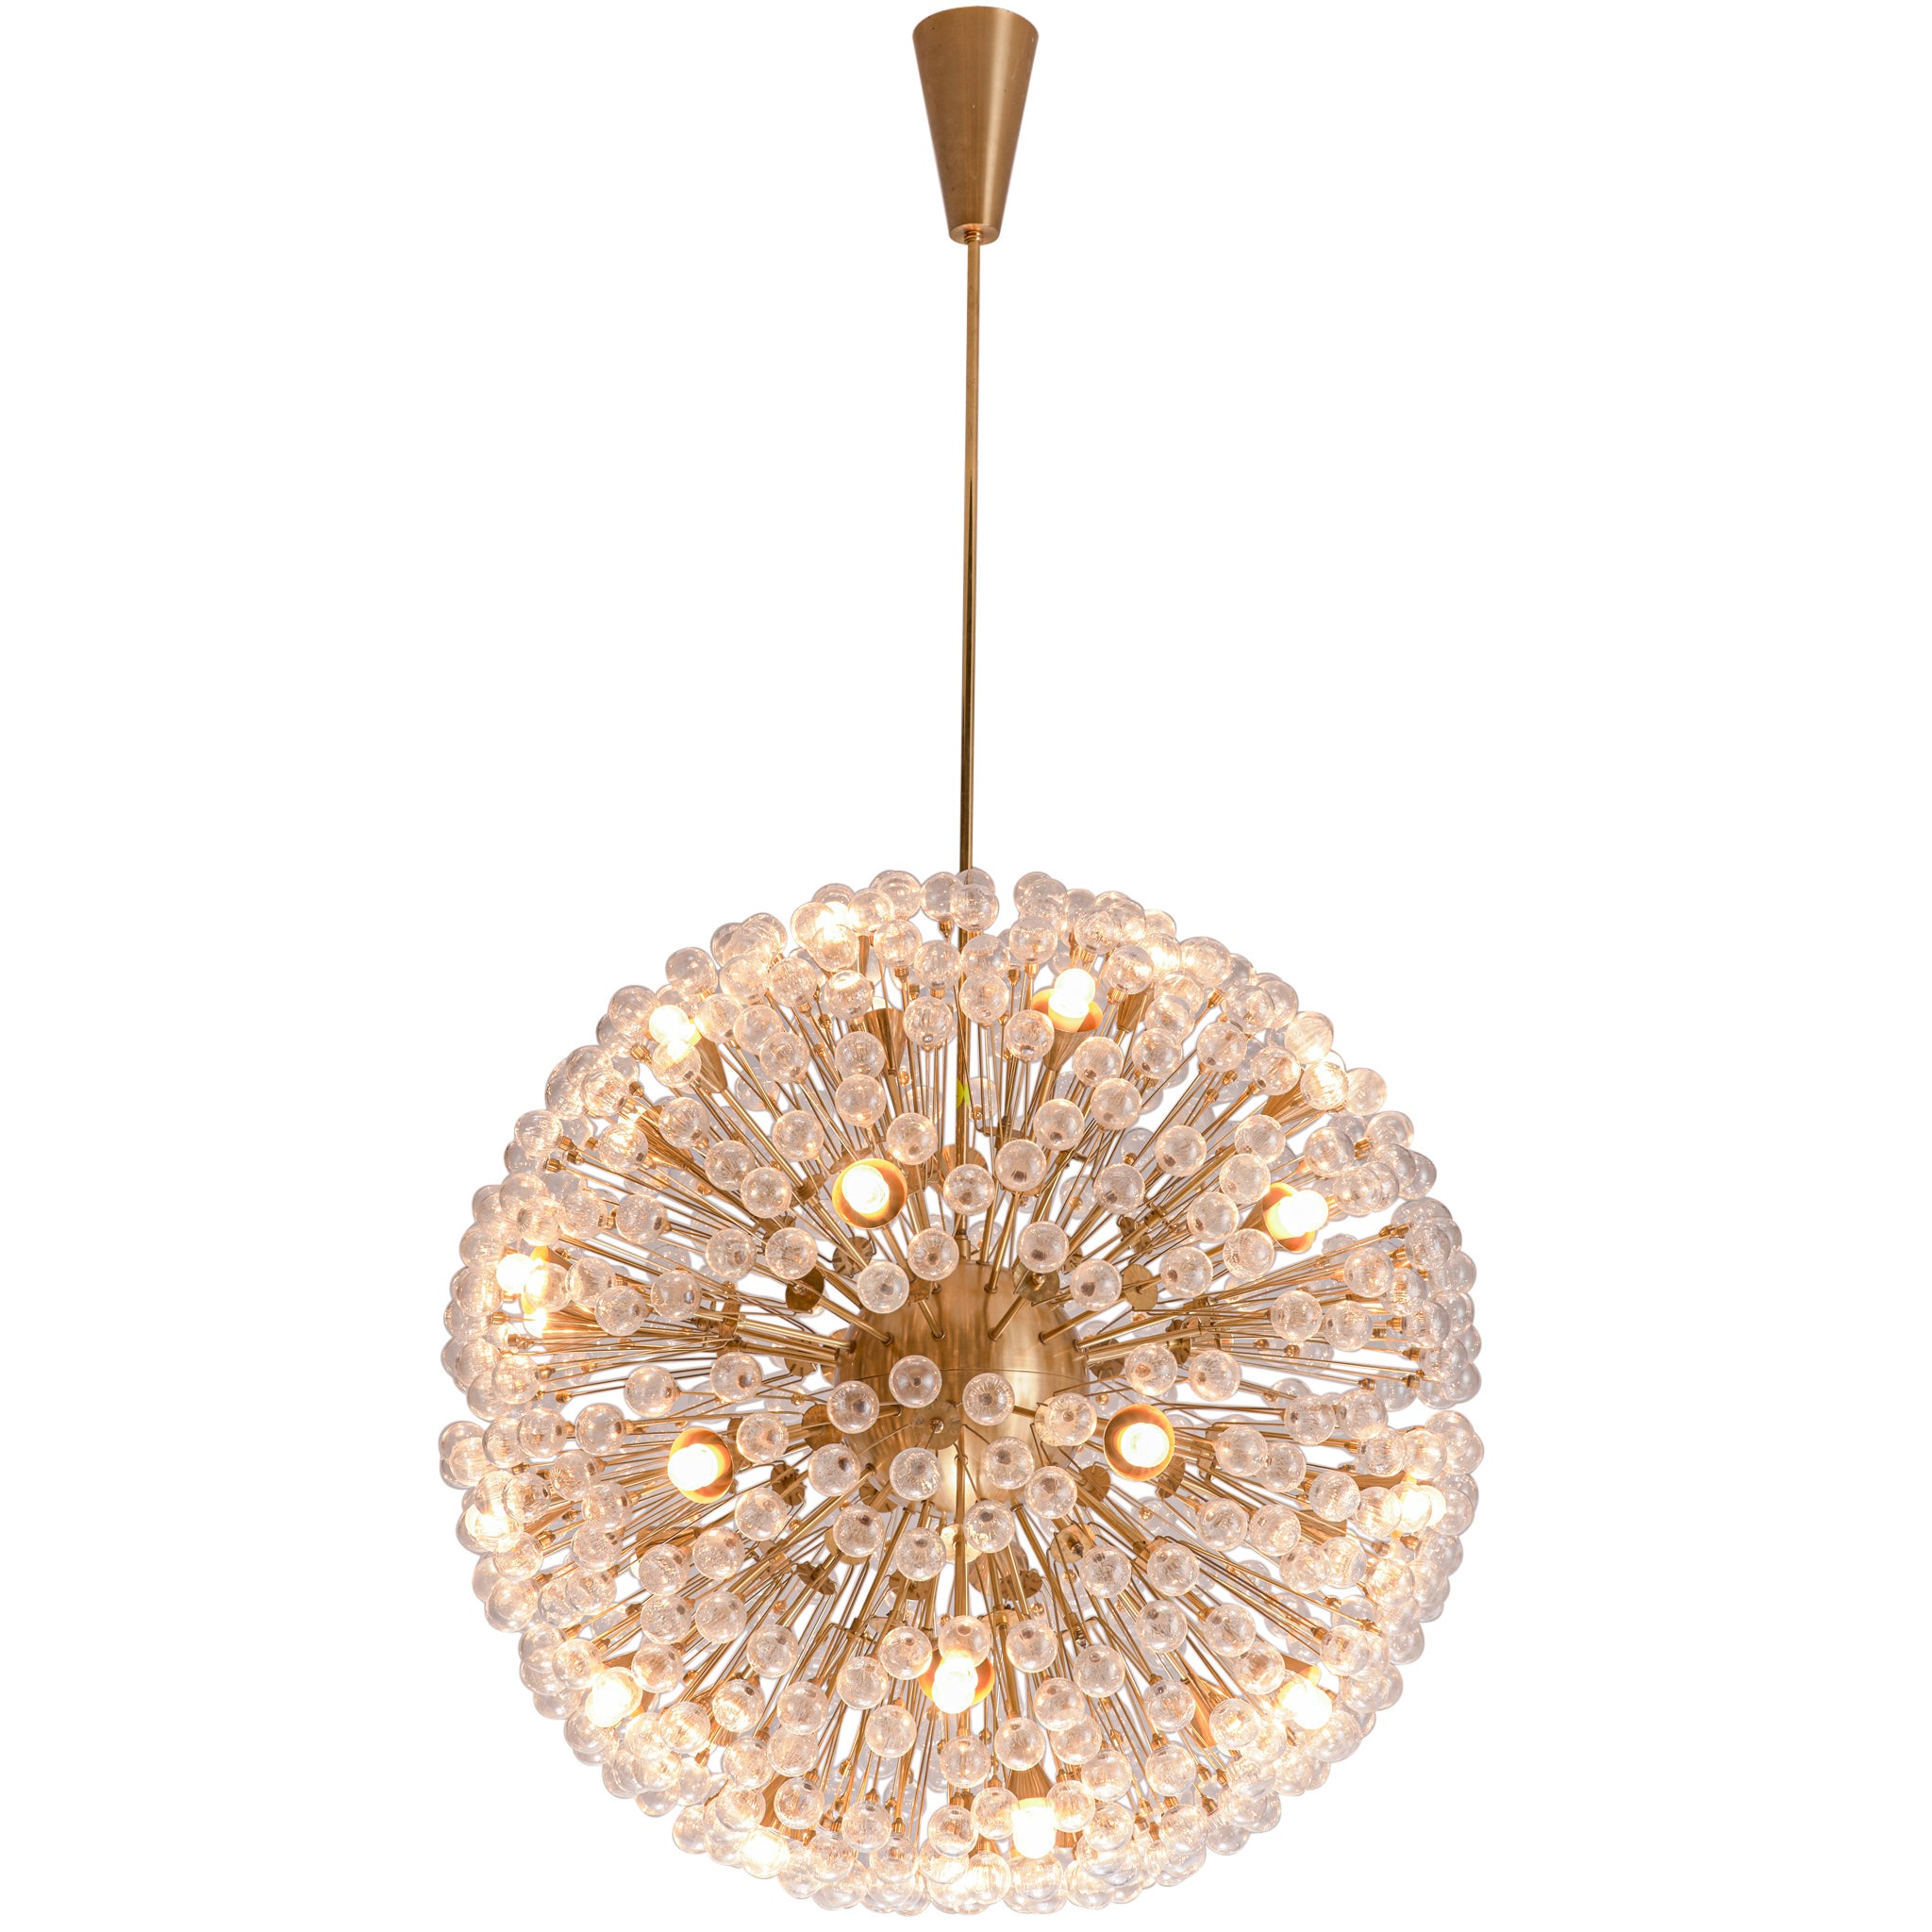 'Sputnik' Chandelier in Brass and Glass